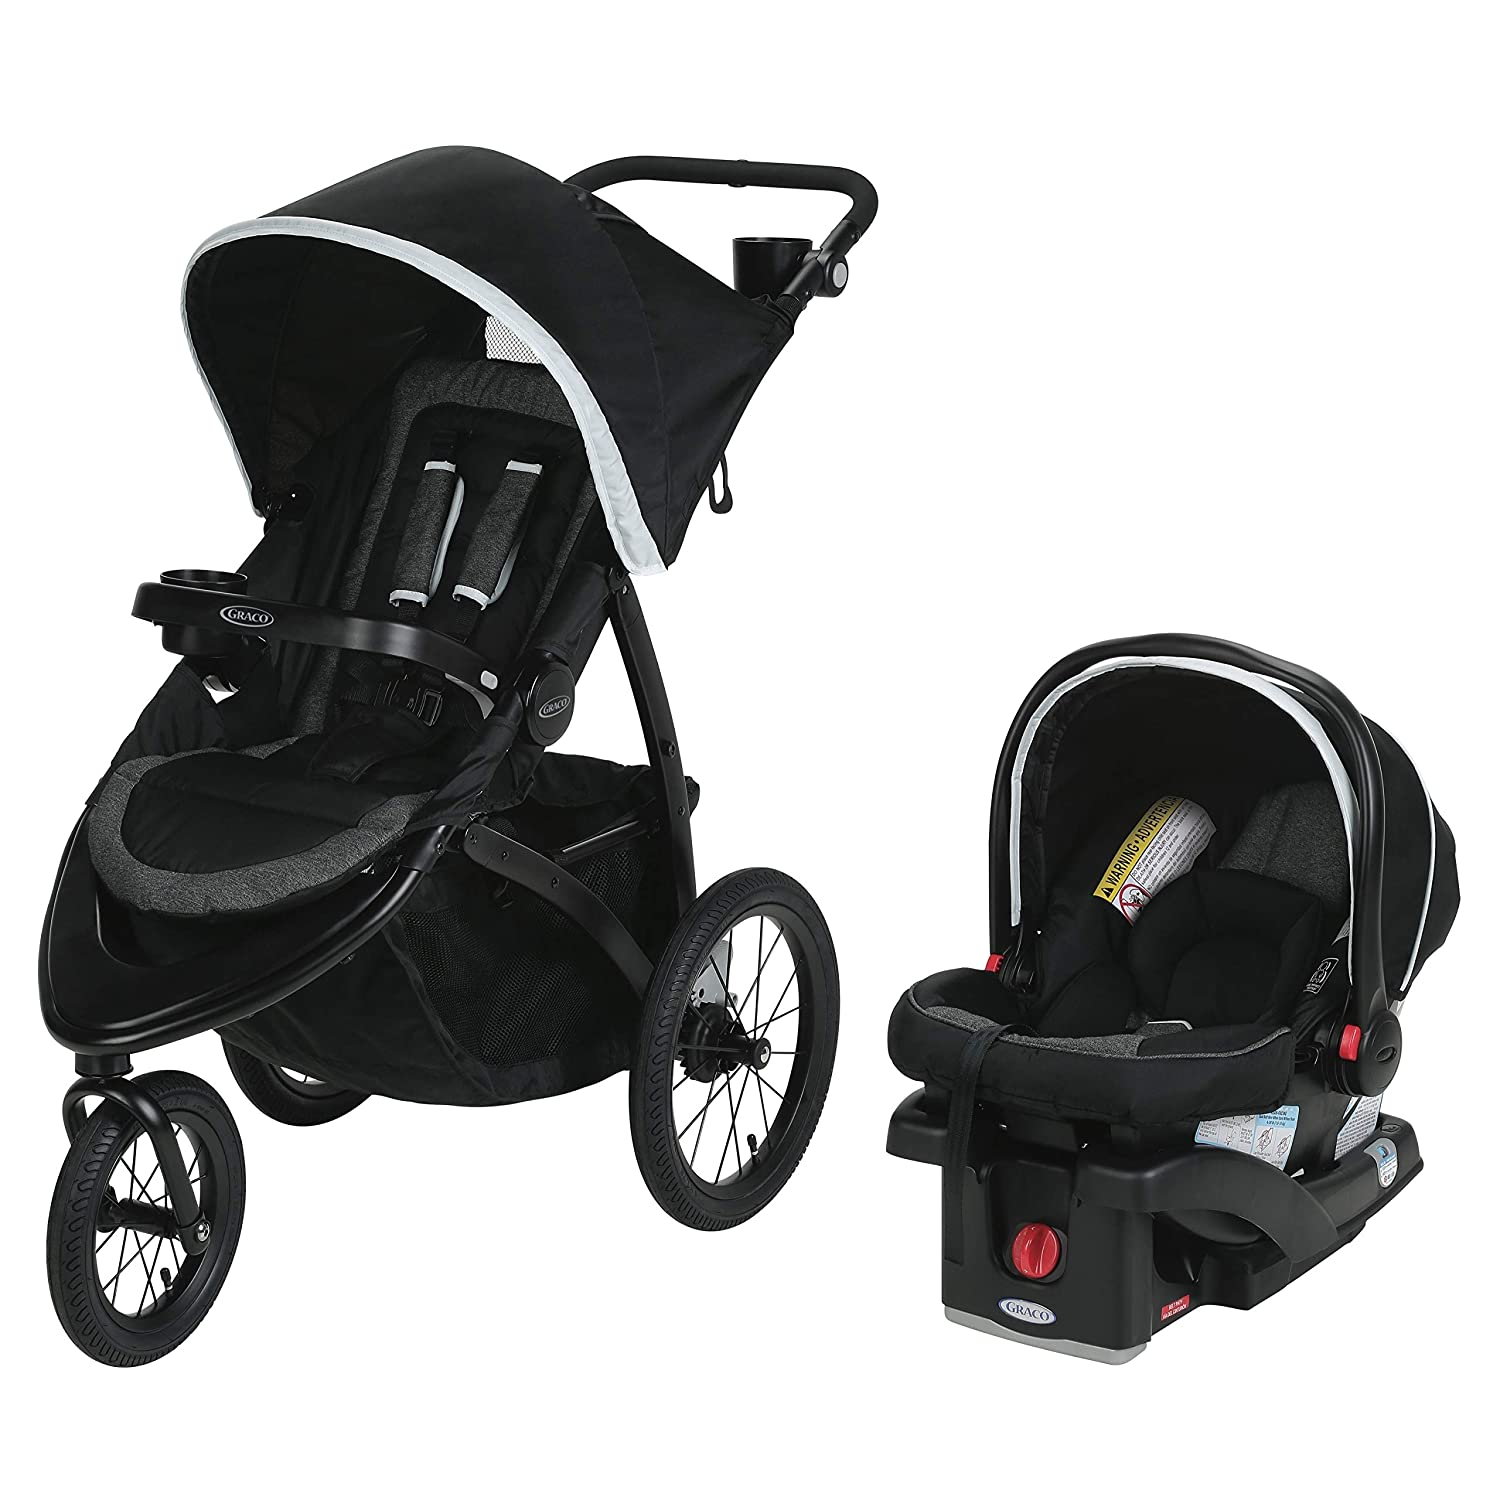 Graco Roadmaster Jogger Travel System Includes Roadmaster Jogging Stroller and SnugRide SnugLock 30 Infant Car Seat, Drift